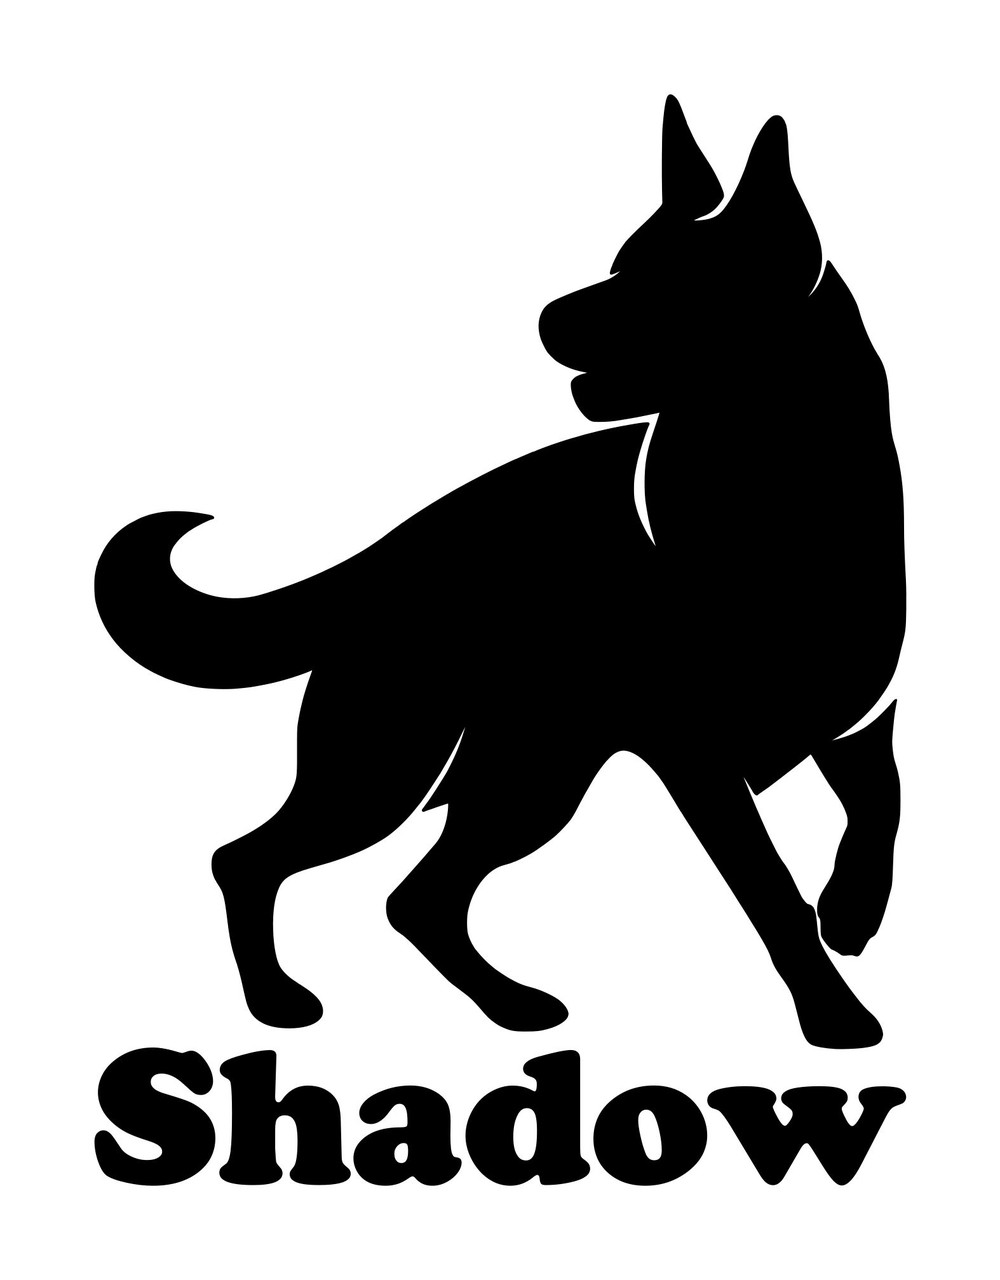 GERMAN SHEPHERD with Personalized Name Vinyl Decal Sticker -V3- Dog GSD Puppy Alsatian